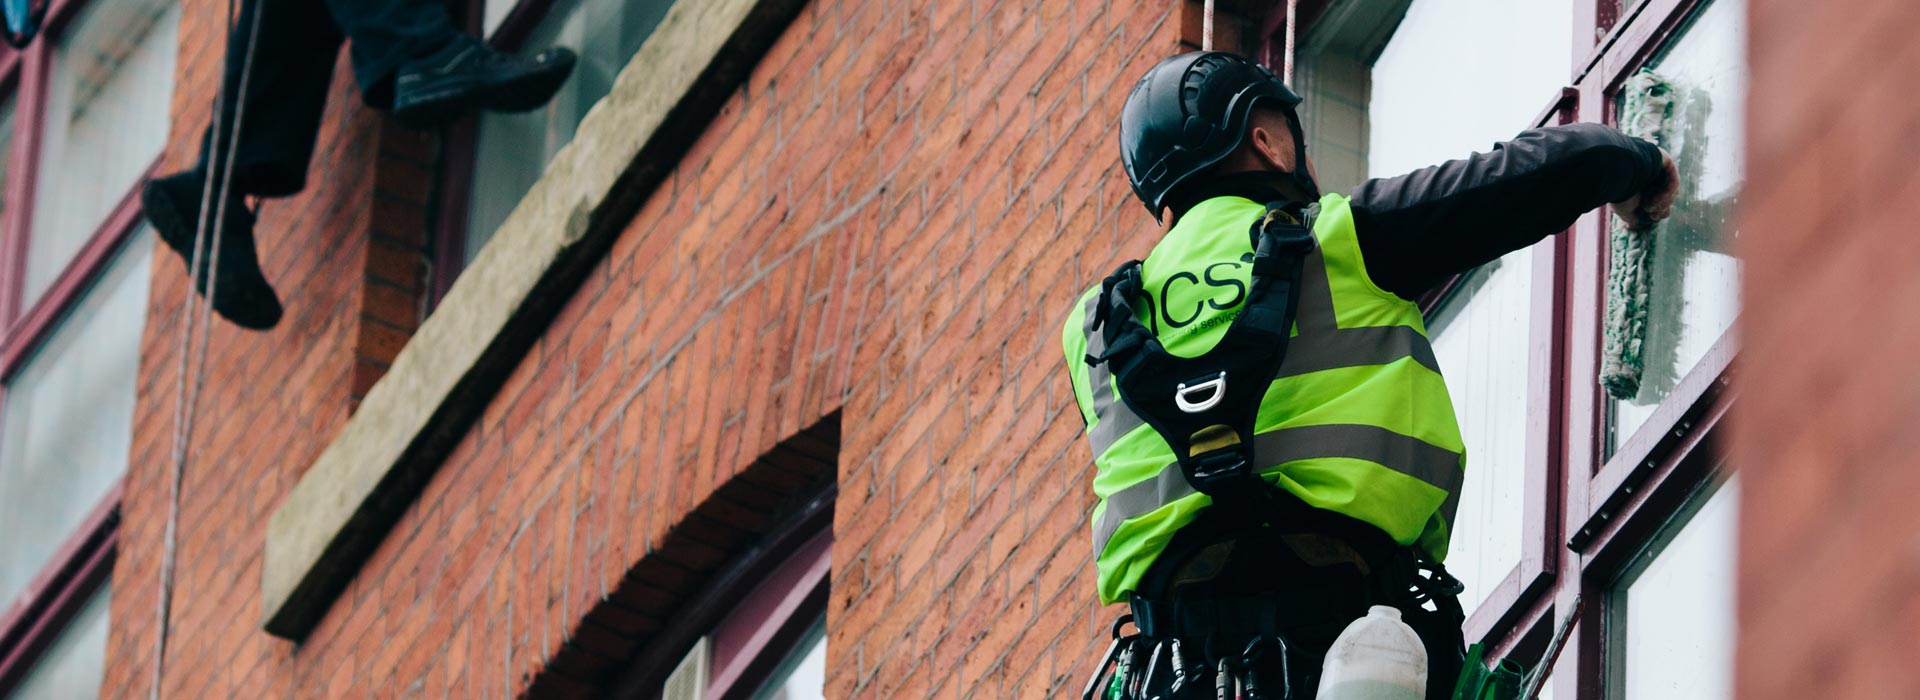 Abseiling & Rope Access Window Cleaning Services in Manchester and the North West - HCS Cleaning Services